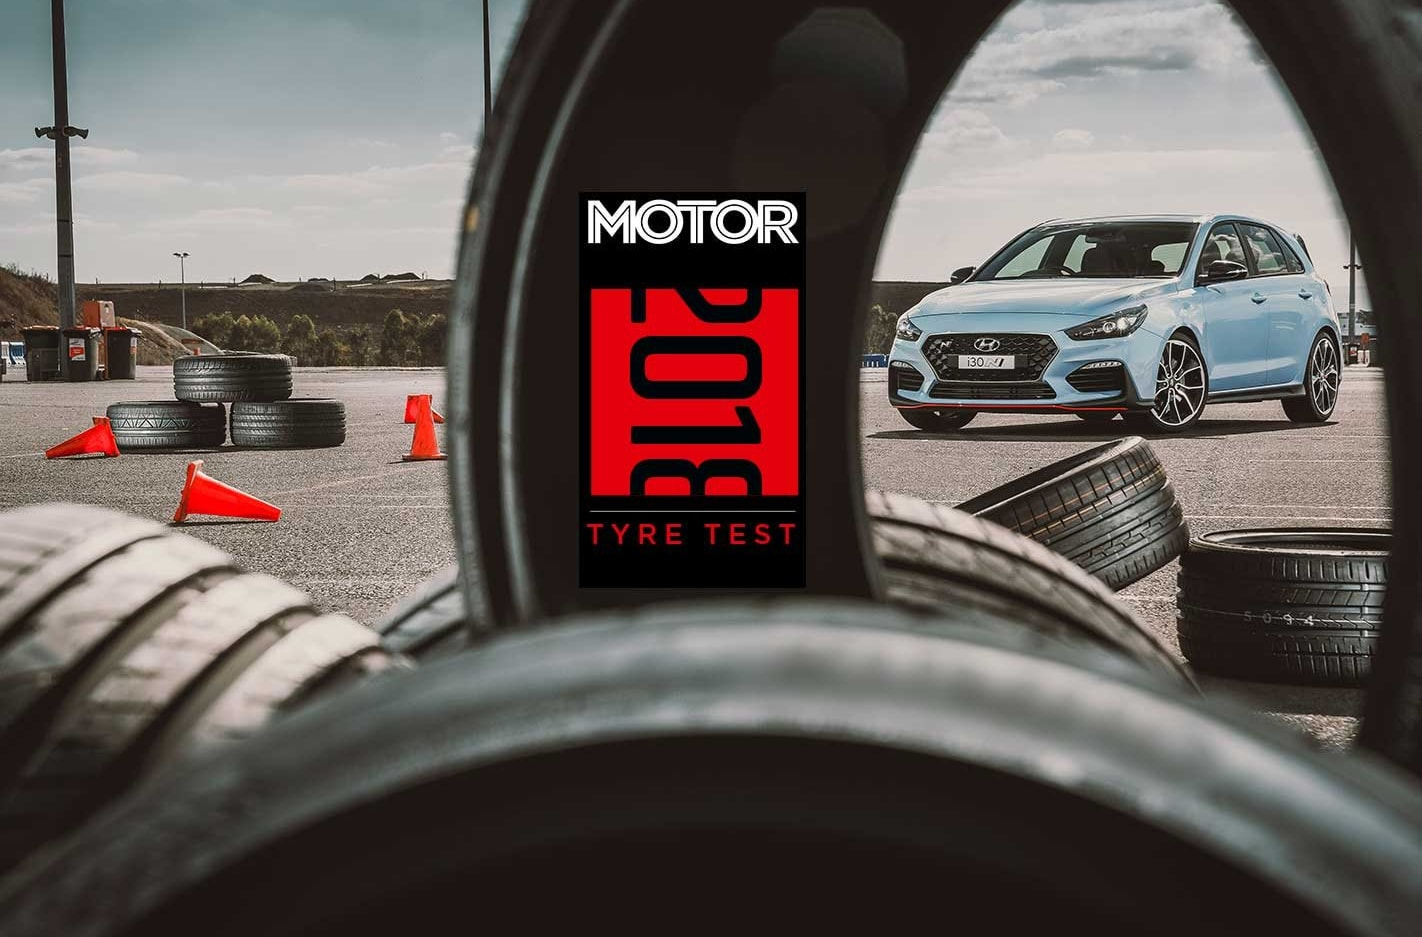 MOTOR Tyre Test 2018 Results